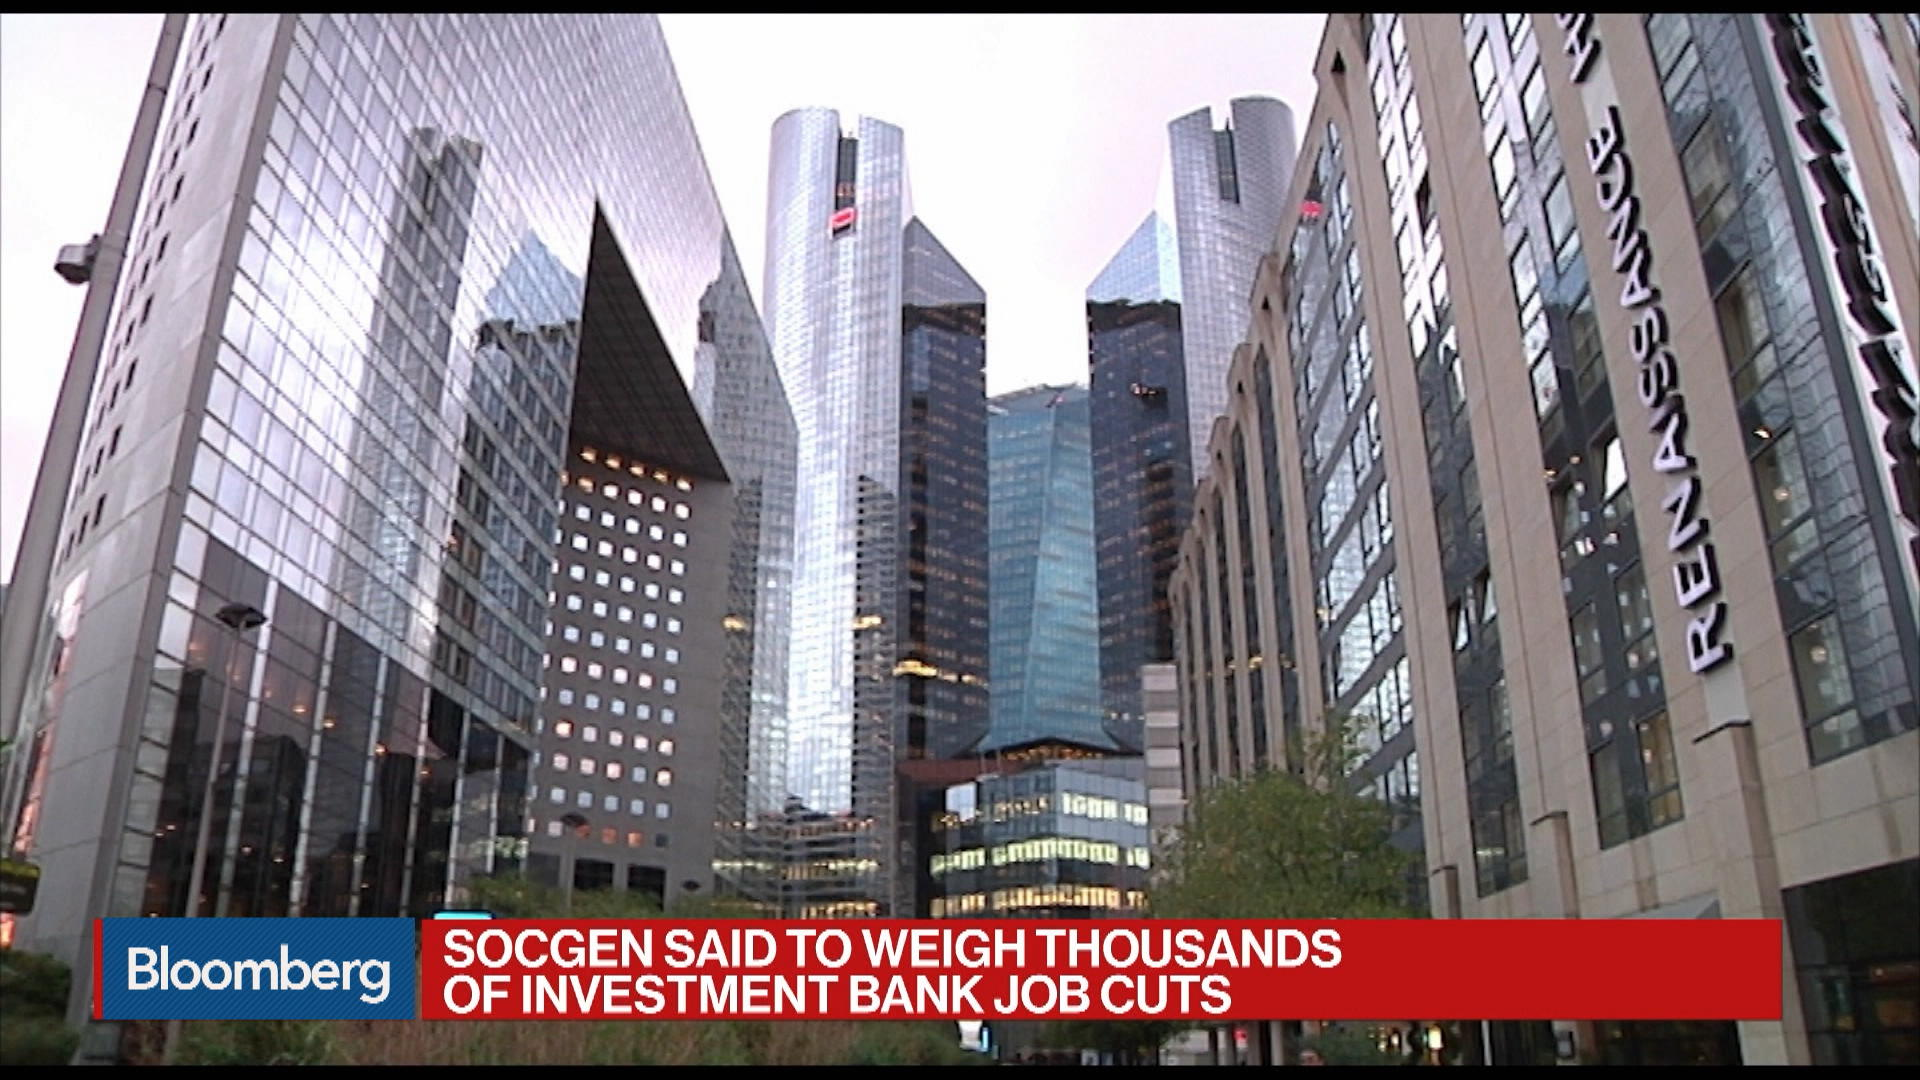 SocGen Said to Weigh Thousands of Investment Bank Job Cuts